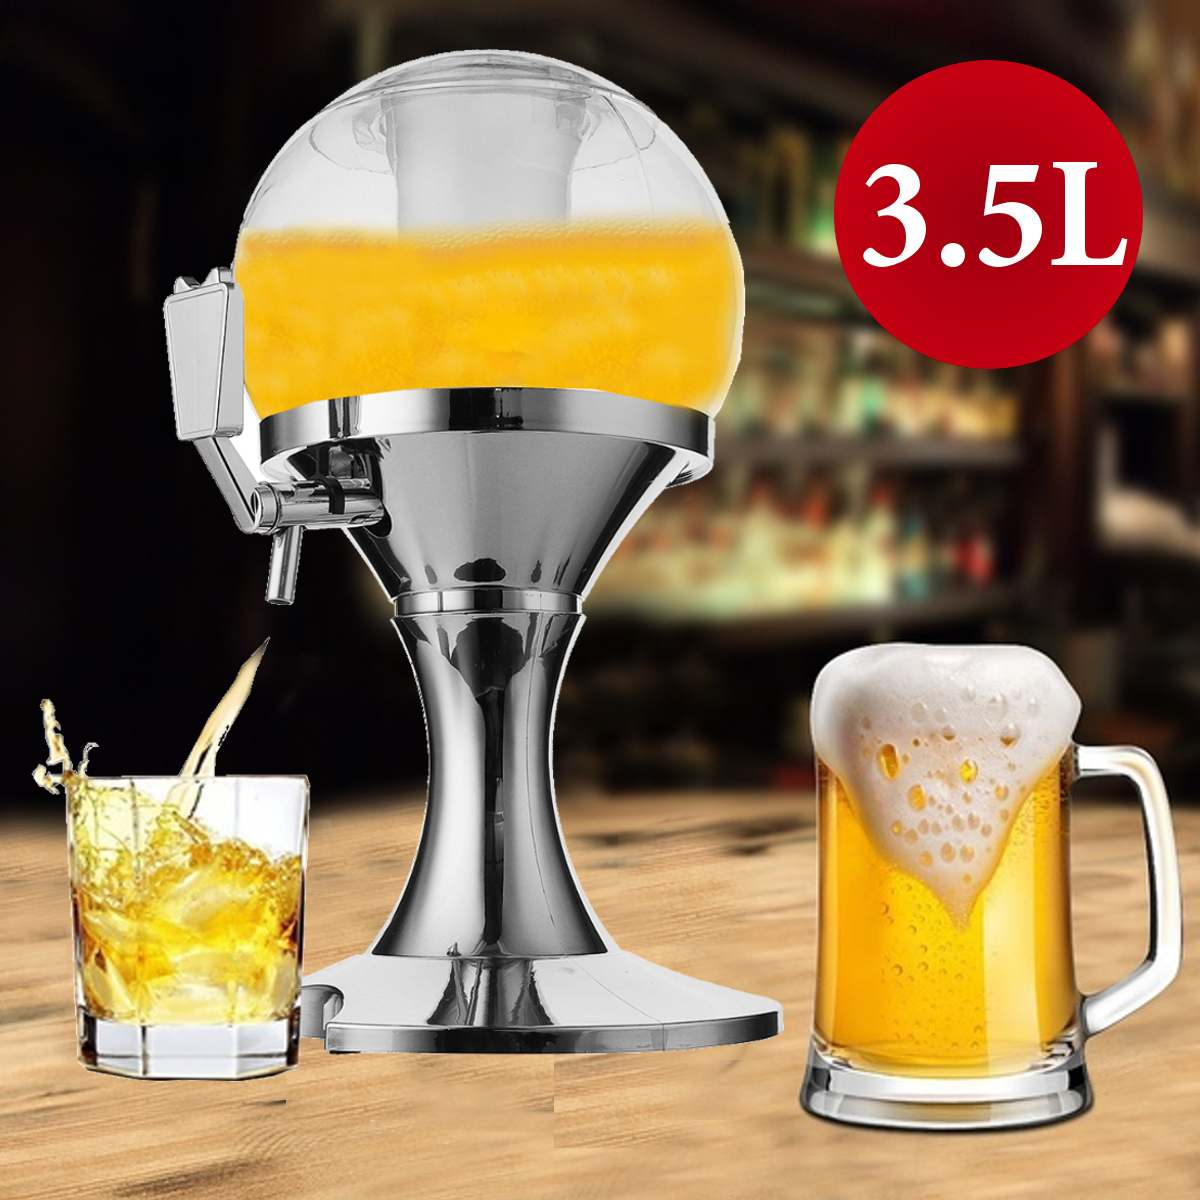 3.5L Bar Ice Core Beer Beverage Dispenser Pourer Machine Container Beer Container Pourer Bar Tool Beer Tower3.5L Bar Ice Core Beer Beverage Dispenser Pourer Machine Container Beer Container Pourer Bar Tool Beer Tower